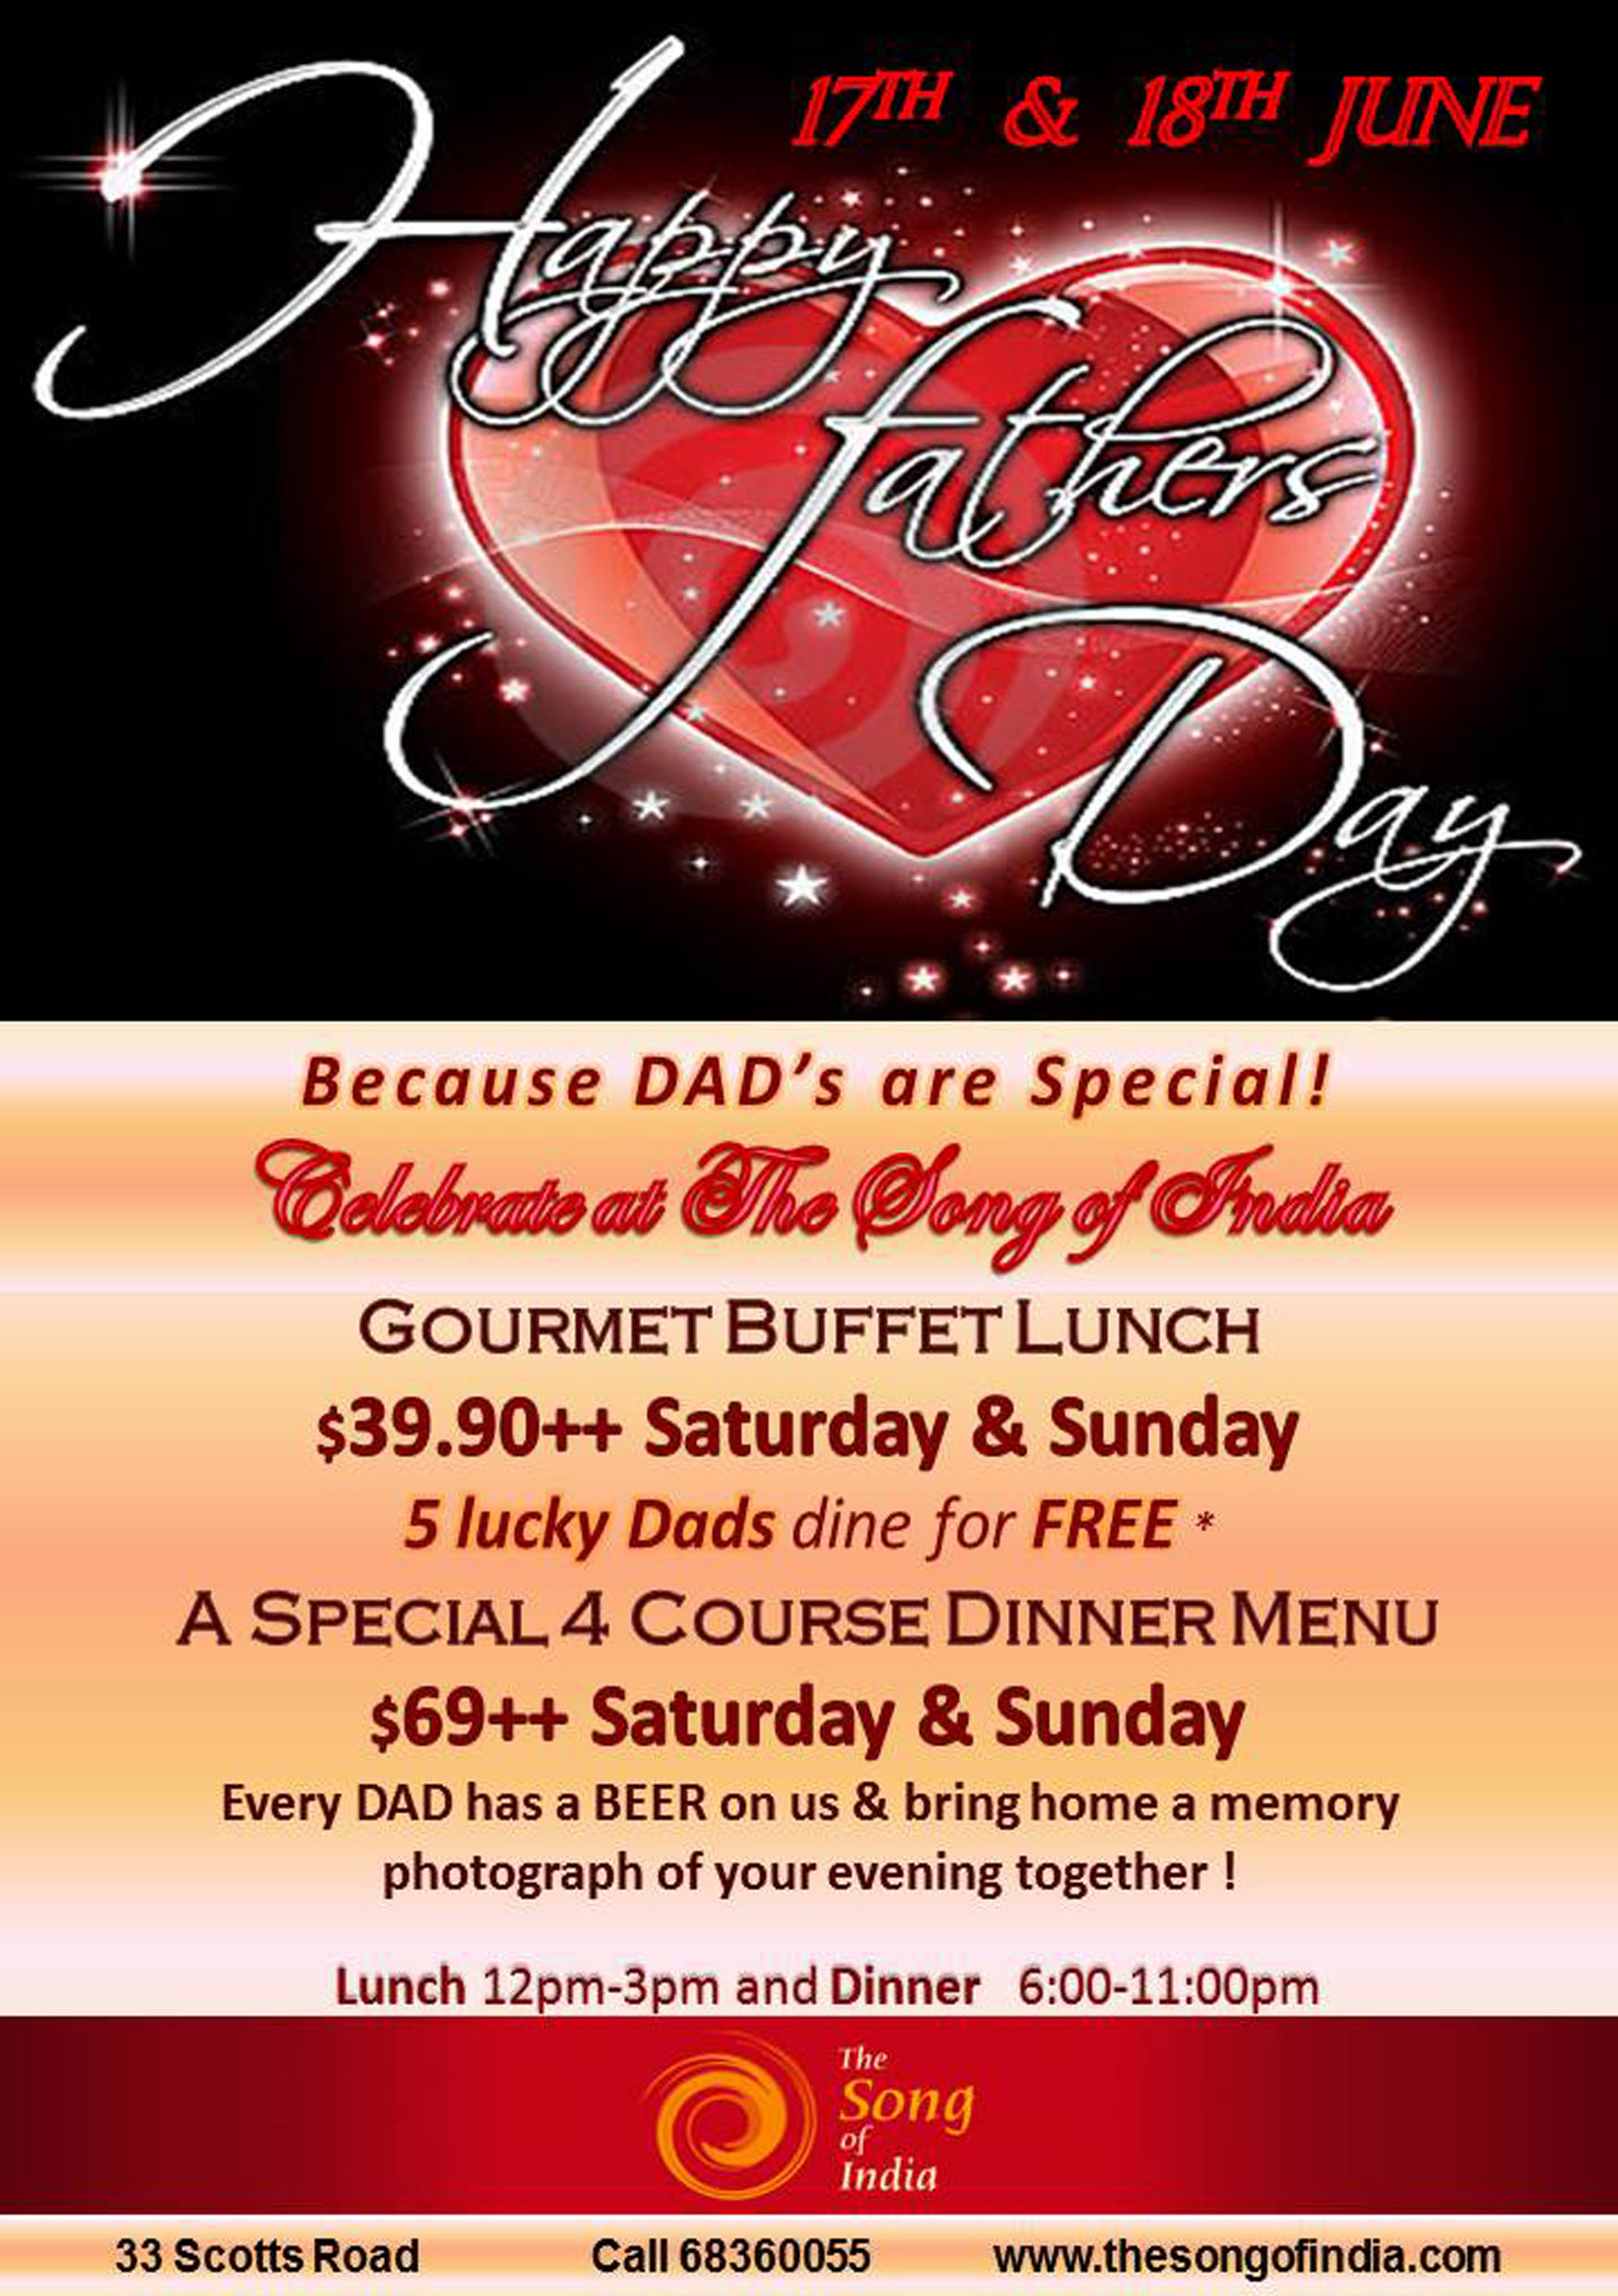 father'S DAY SPECIAL 2017